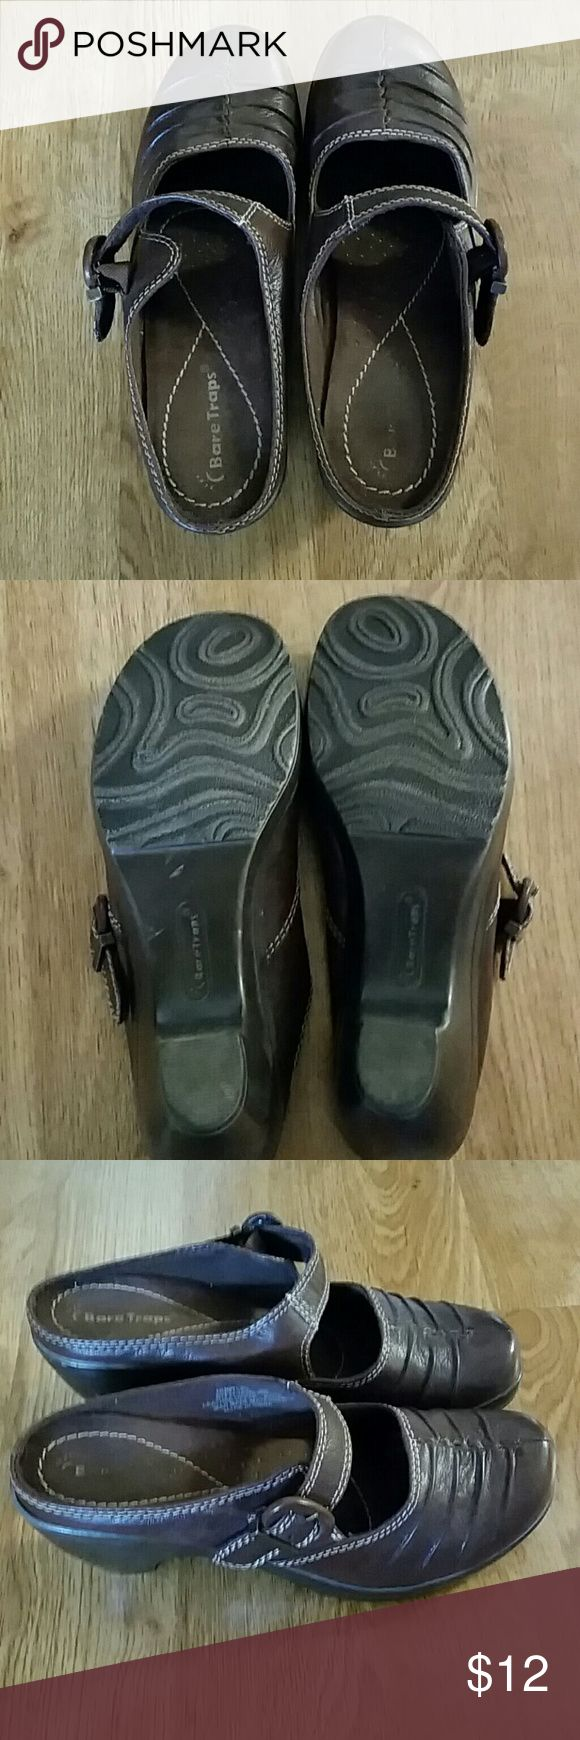 Good Condition Brown Mules by Bare Traps Good Condition Brown Mules by Bare Traps size 8M (Consider bundling to get more value out of the cost of Shipping and feel free to make offers on bundles) Thank you for visiting my closet!! SMOKE FREE CLEAN HOME Bare Traps Shoes Mules & Clogs